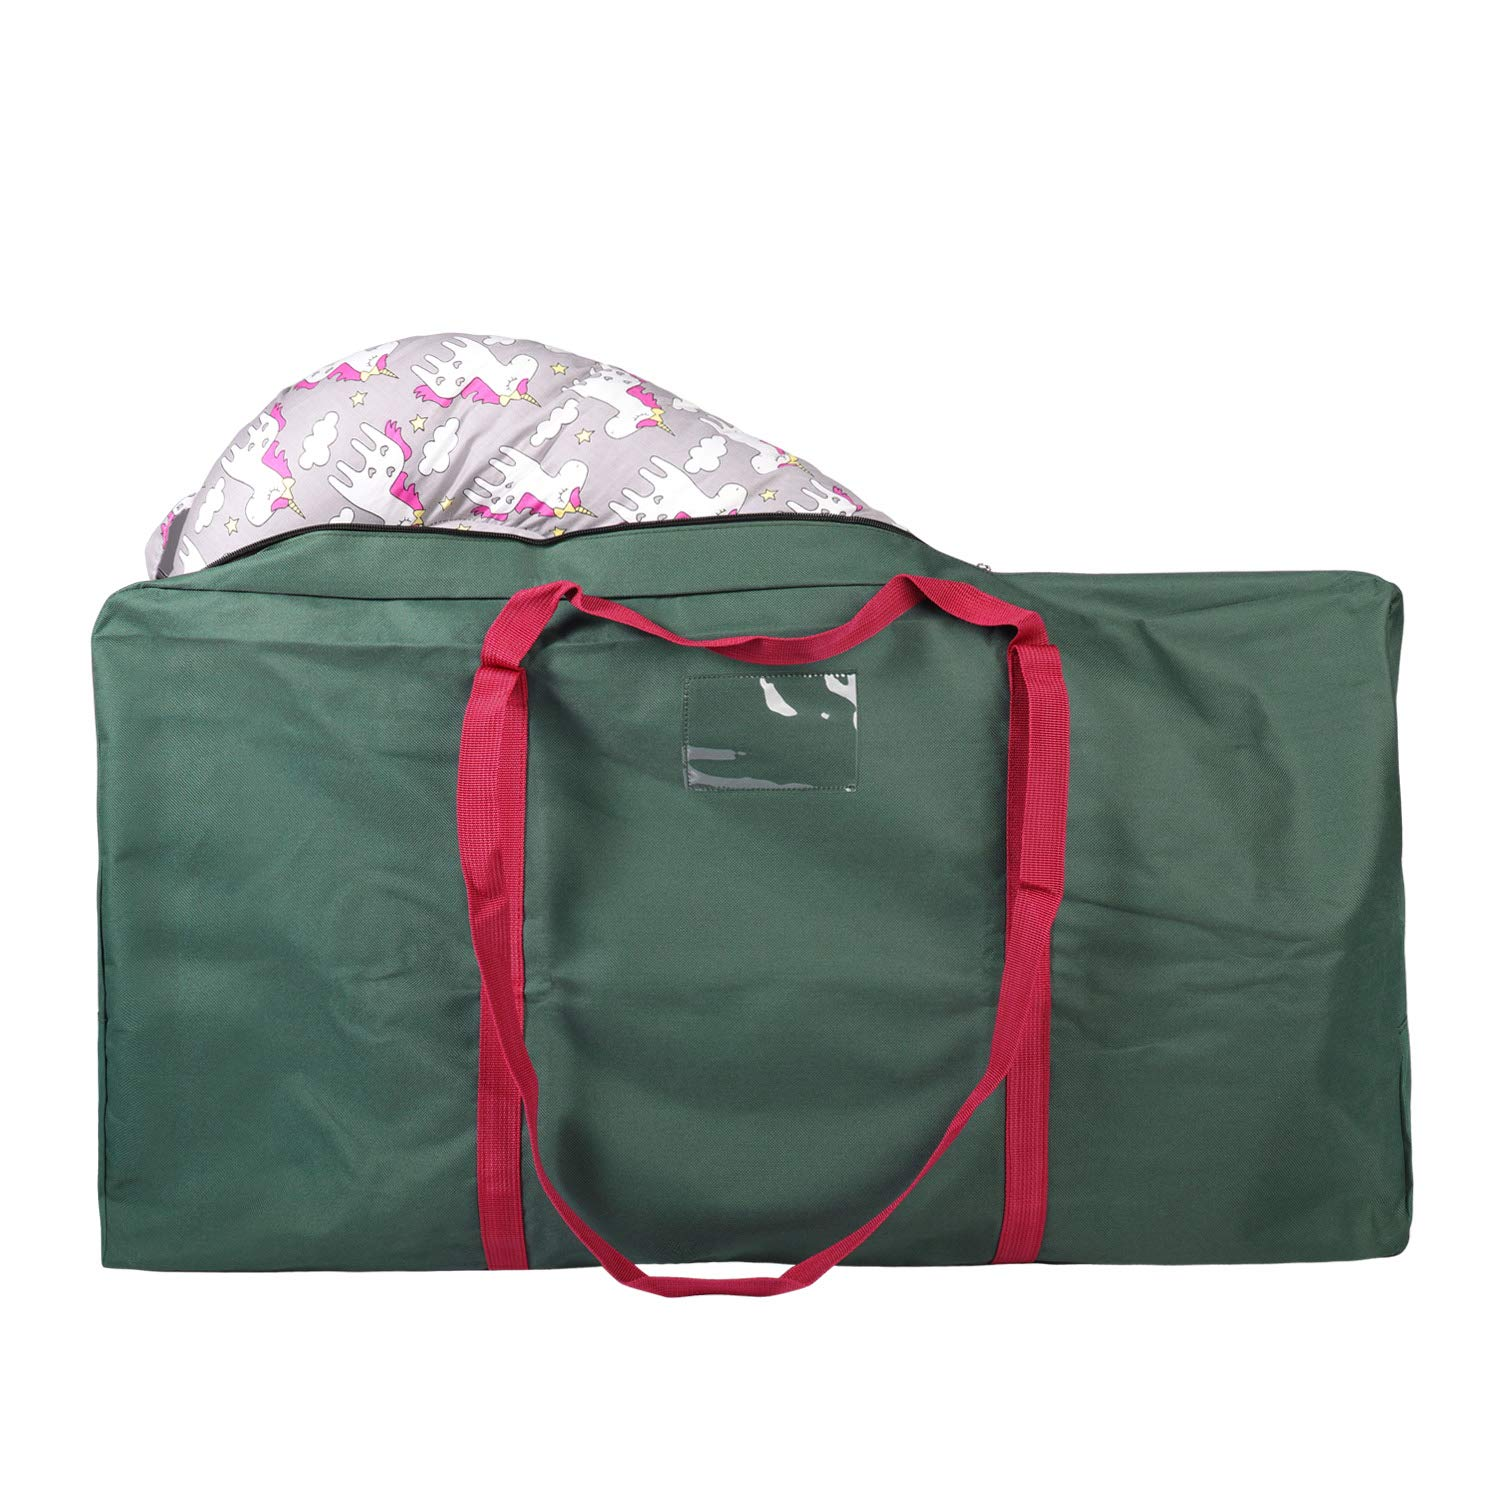 Buy Water-Resistant Transport Bags for Baby Lounger, Large ...